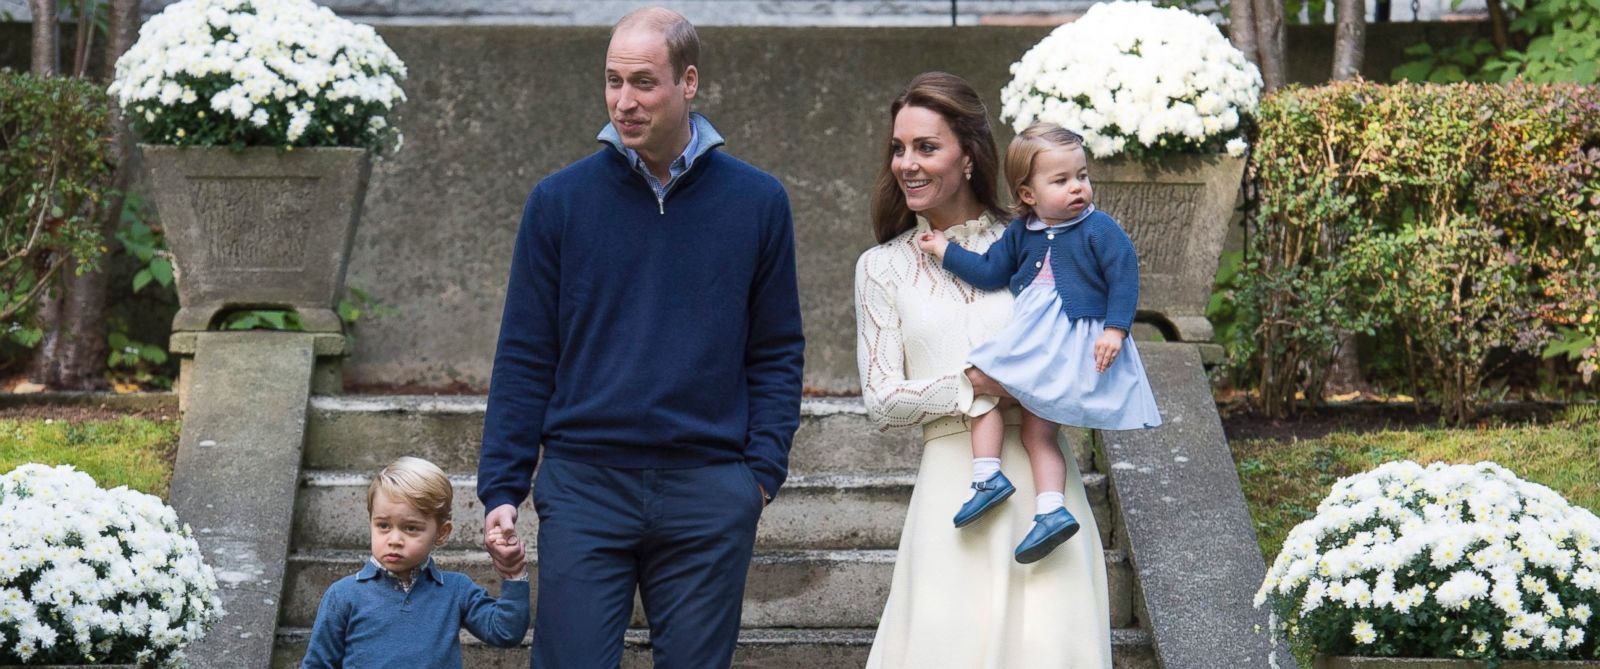 PHOTO: Britains Prince William, Catherine, Duchess of Cambridge and their children Princess Charlotte and Prince George attend a party at Government House in Victoria, Canada, Sept. 29, 2016.